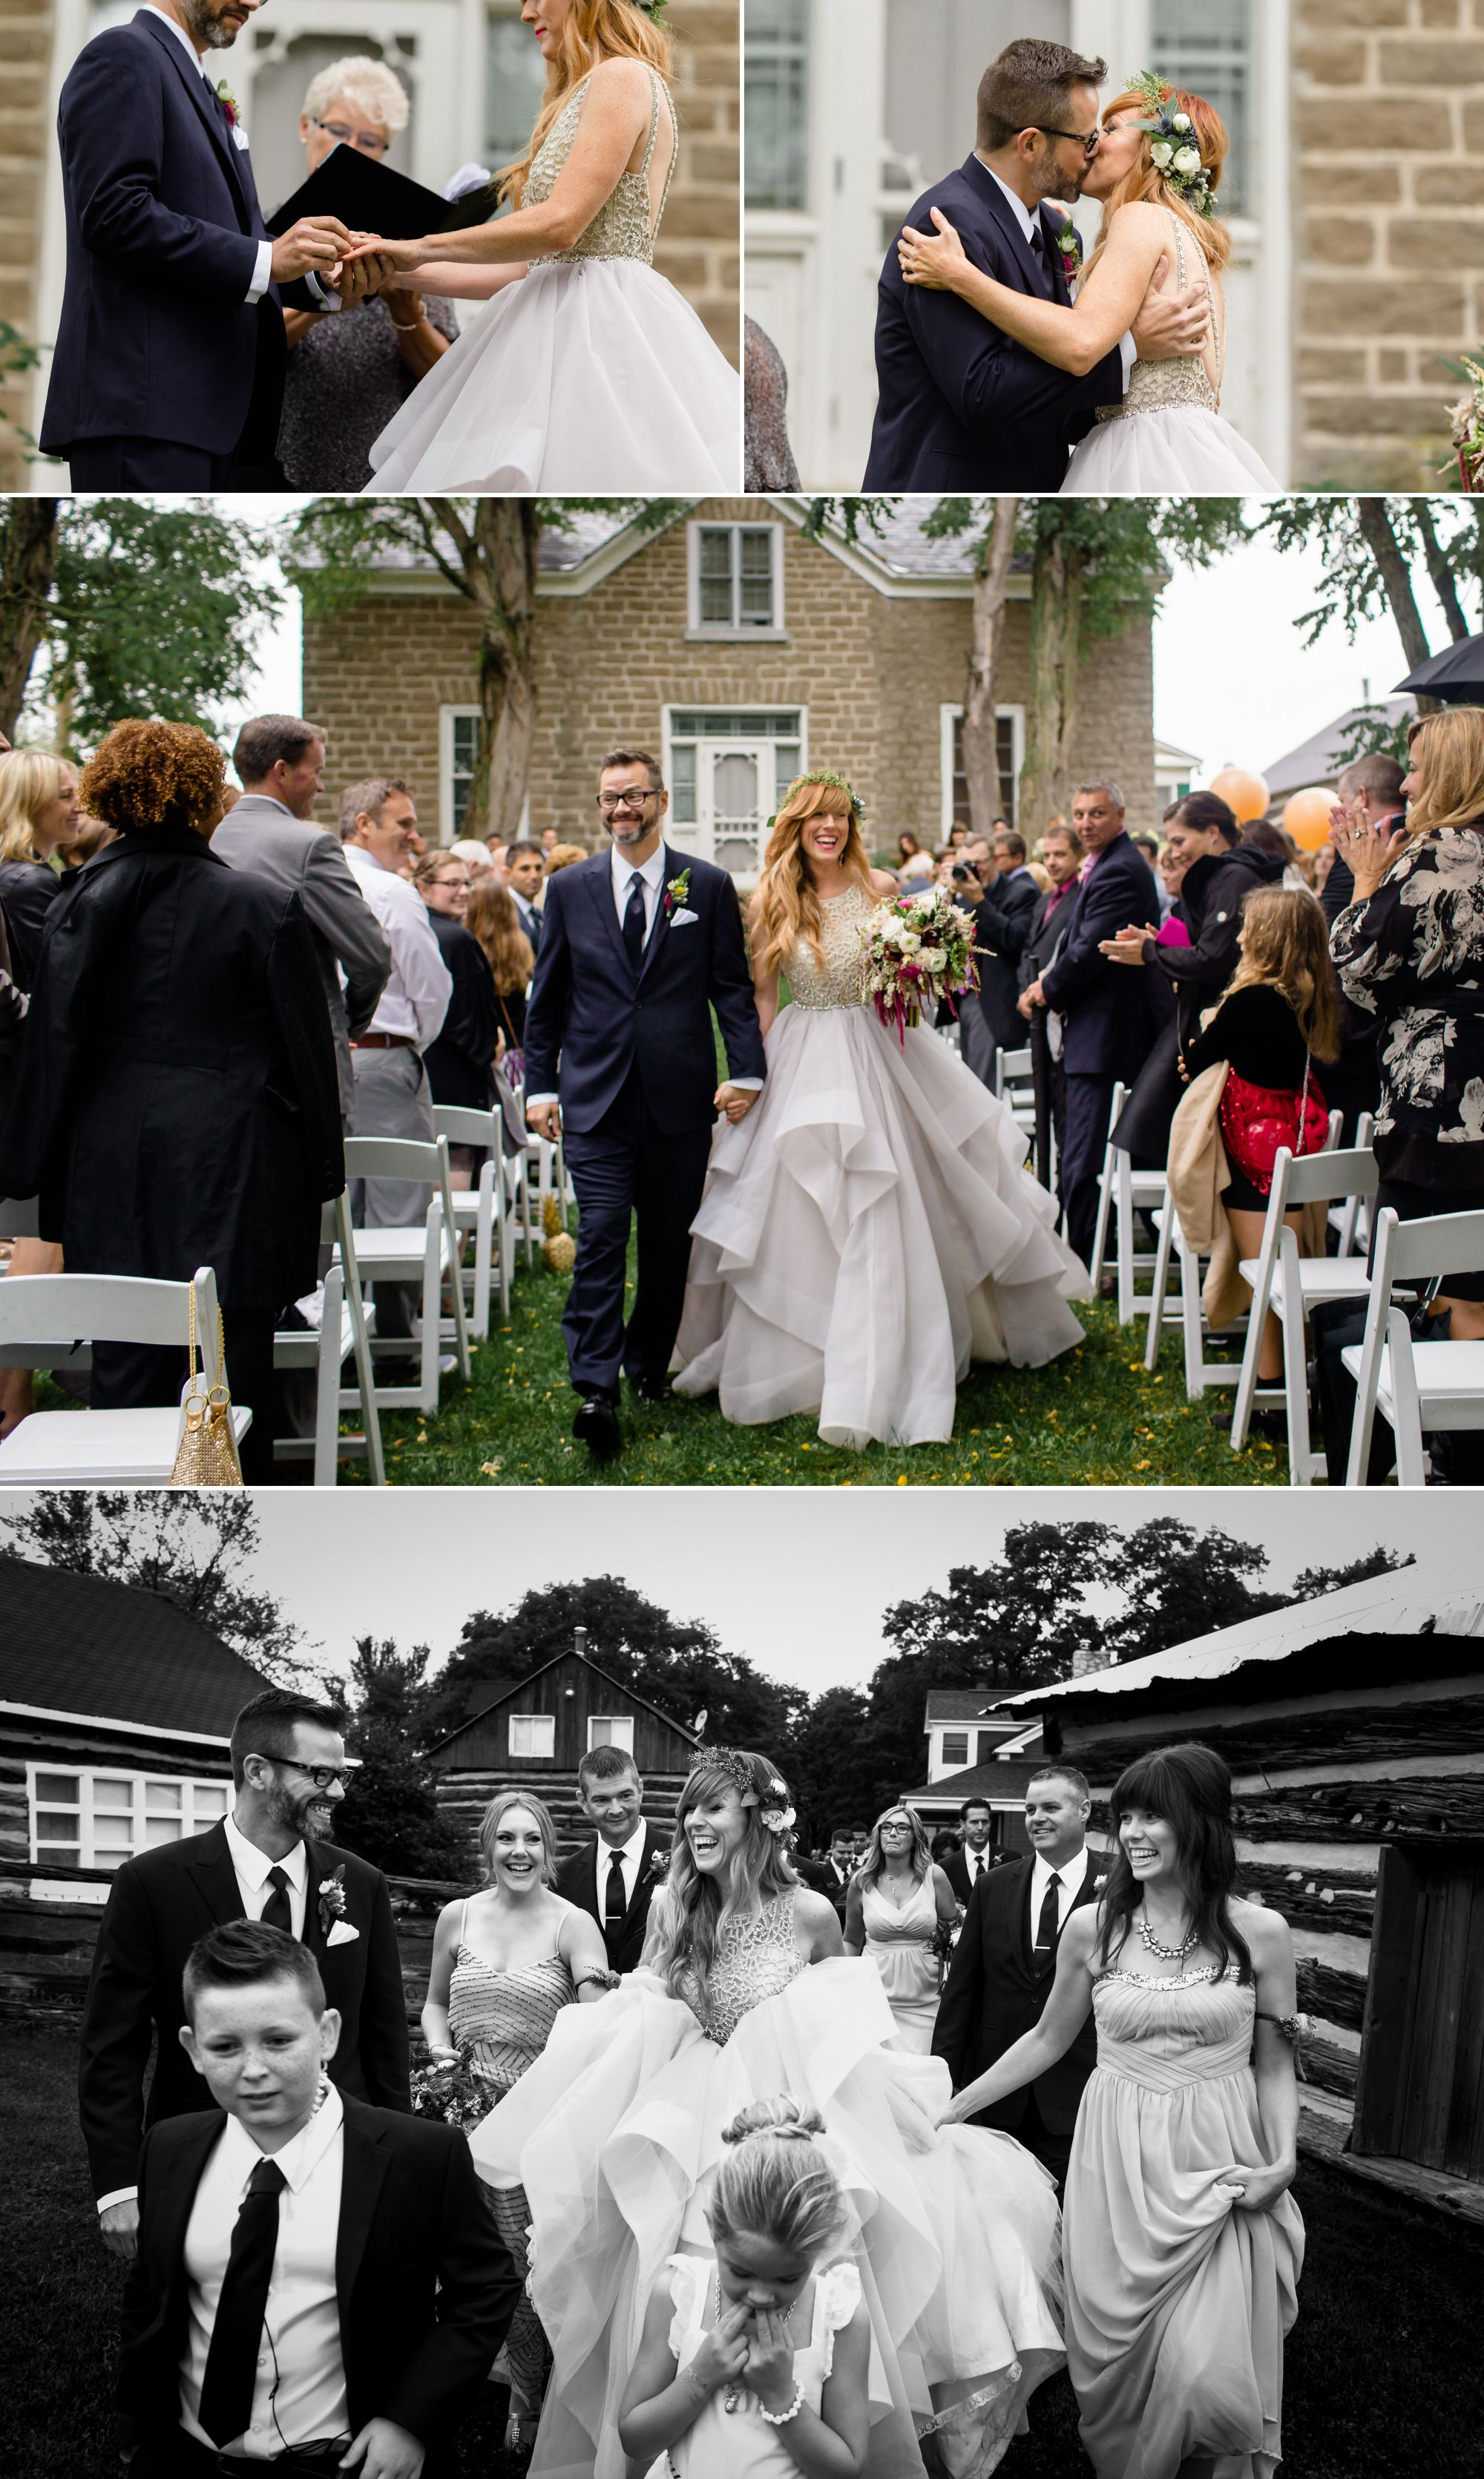 Wedding ceremony photographs at Stonefields Heritage Farm